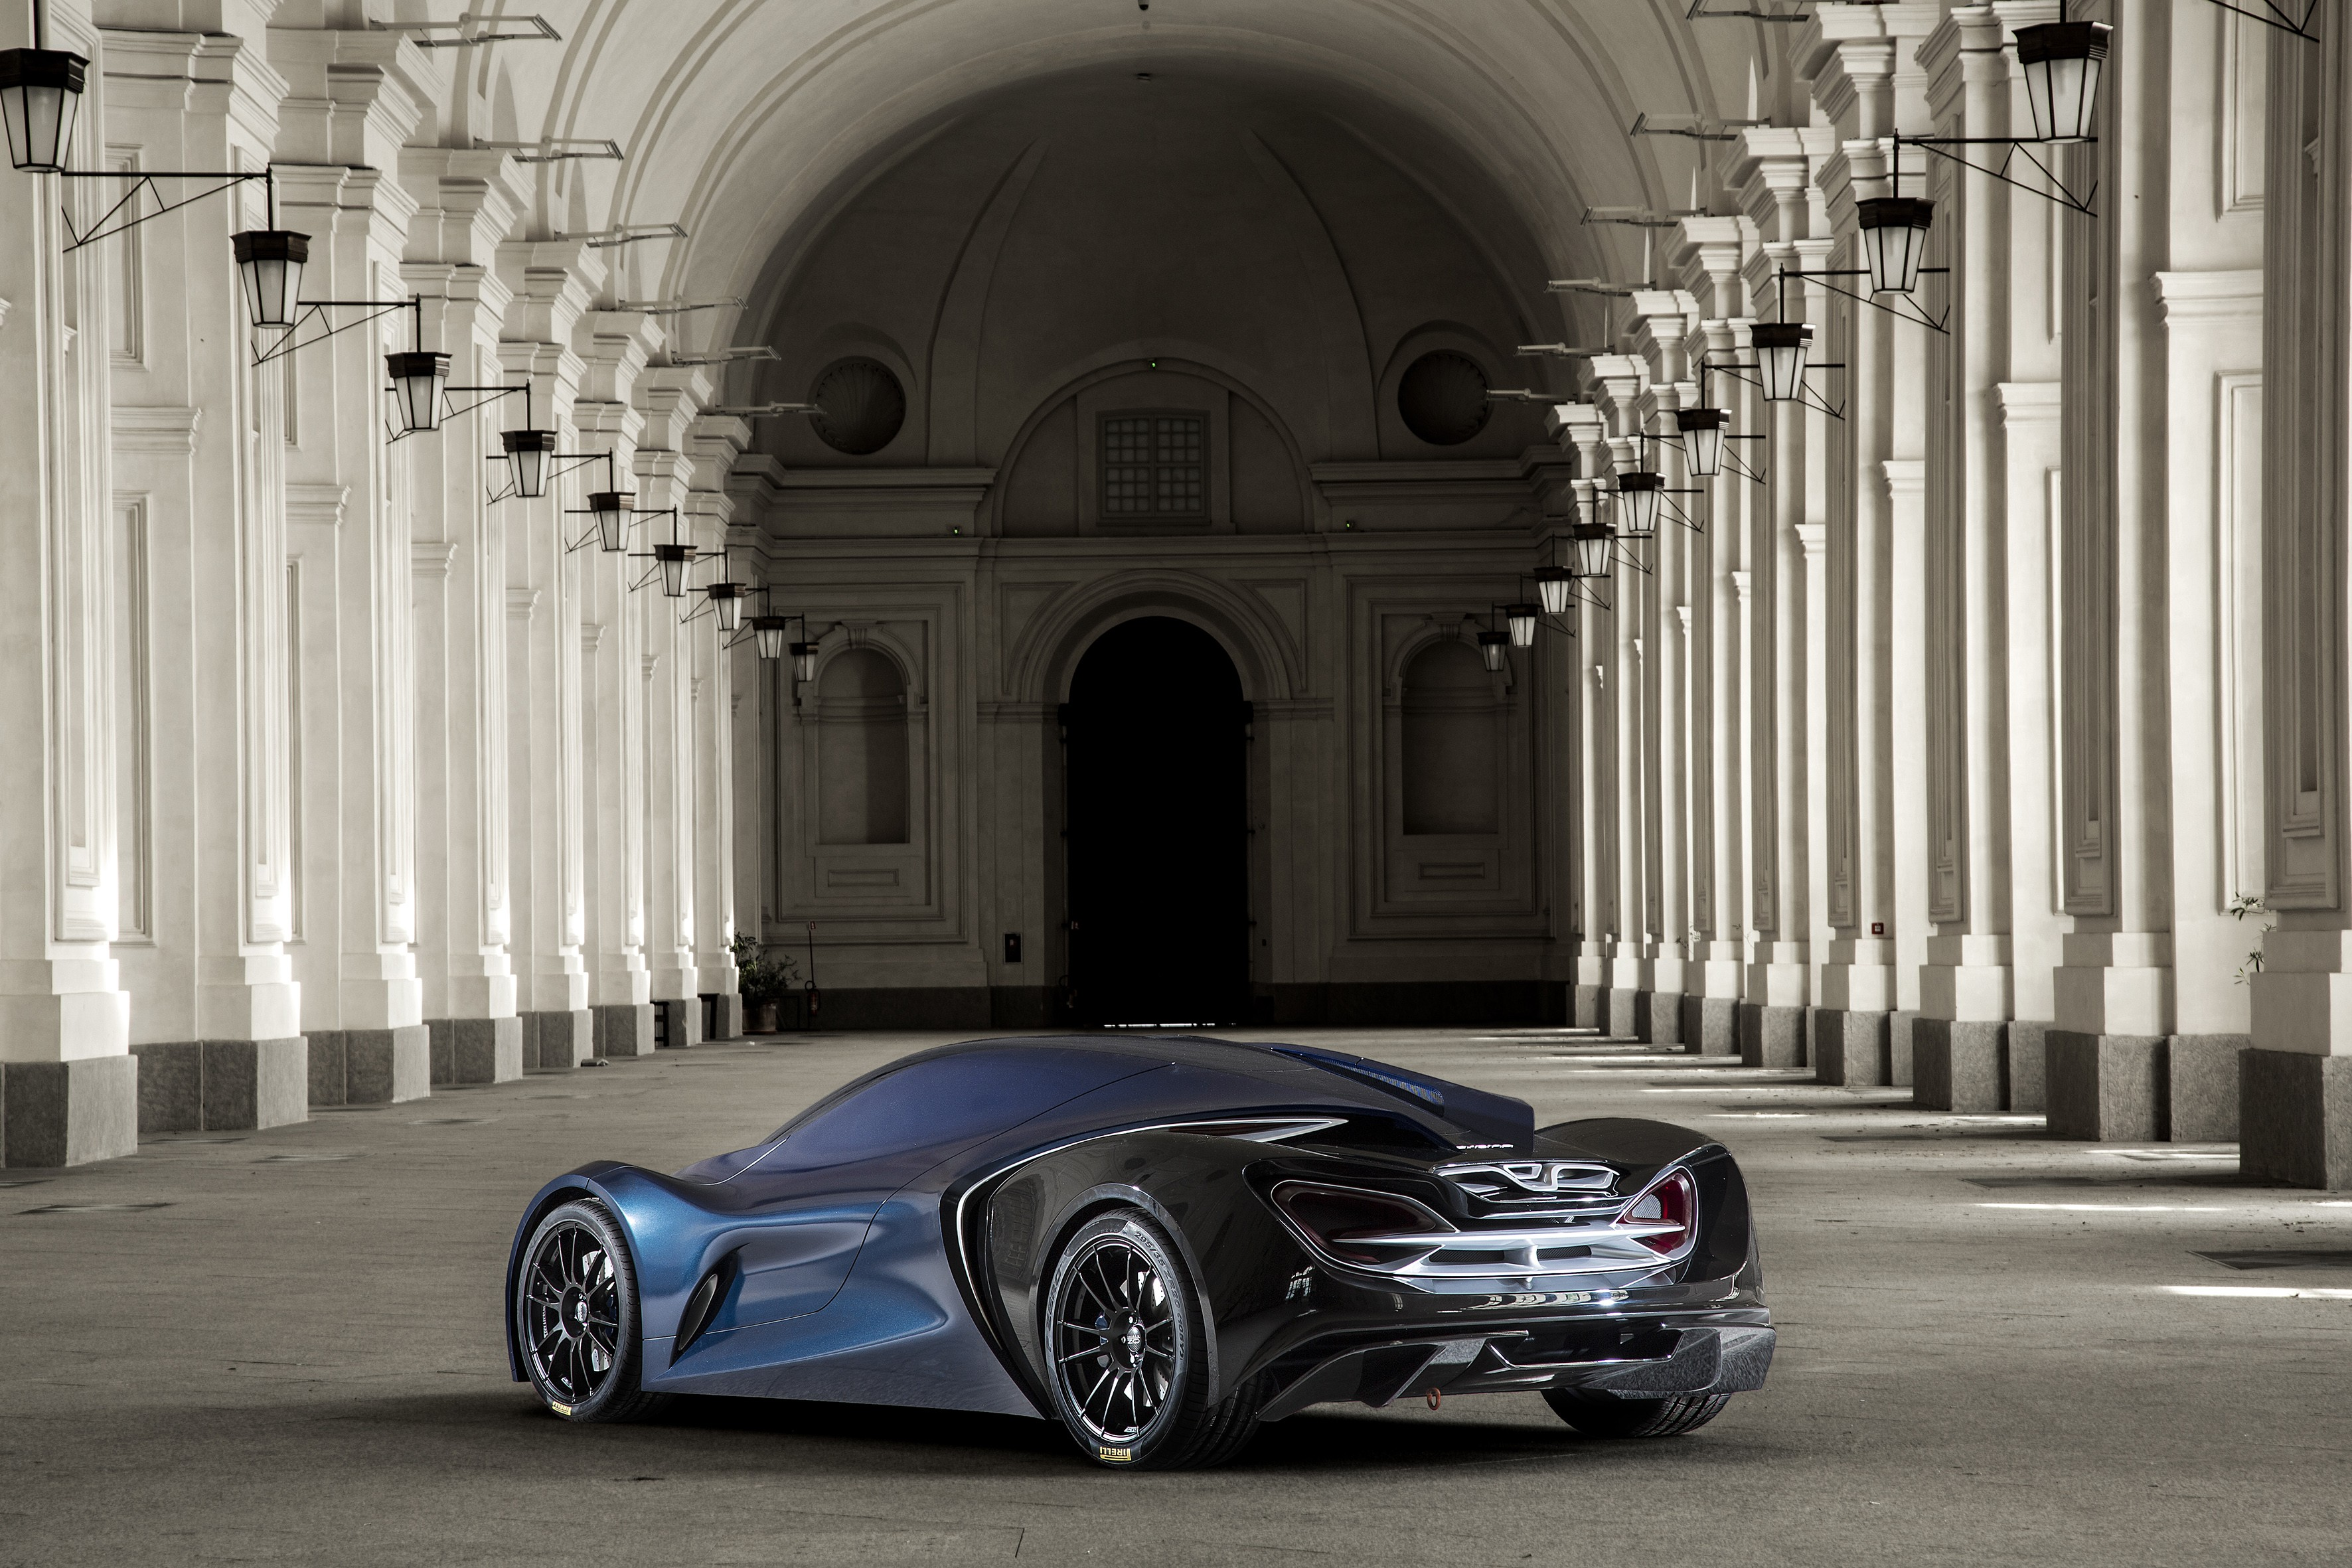 The IED Syrma Concept Car Is a Futuristic McLaren ...